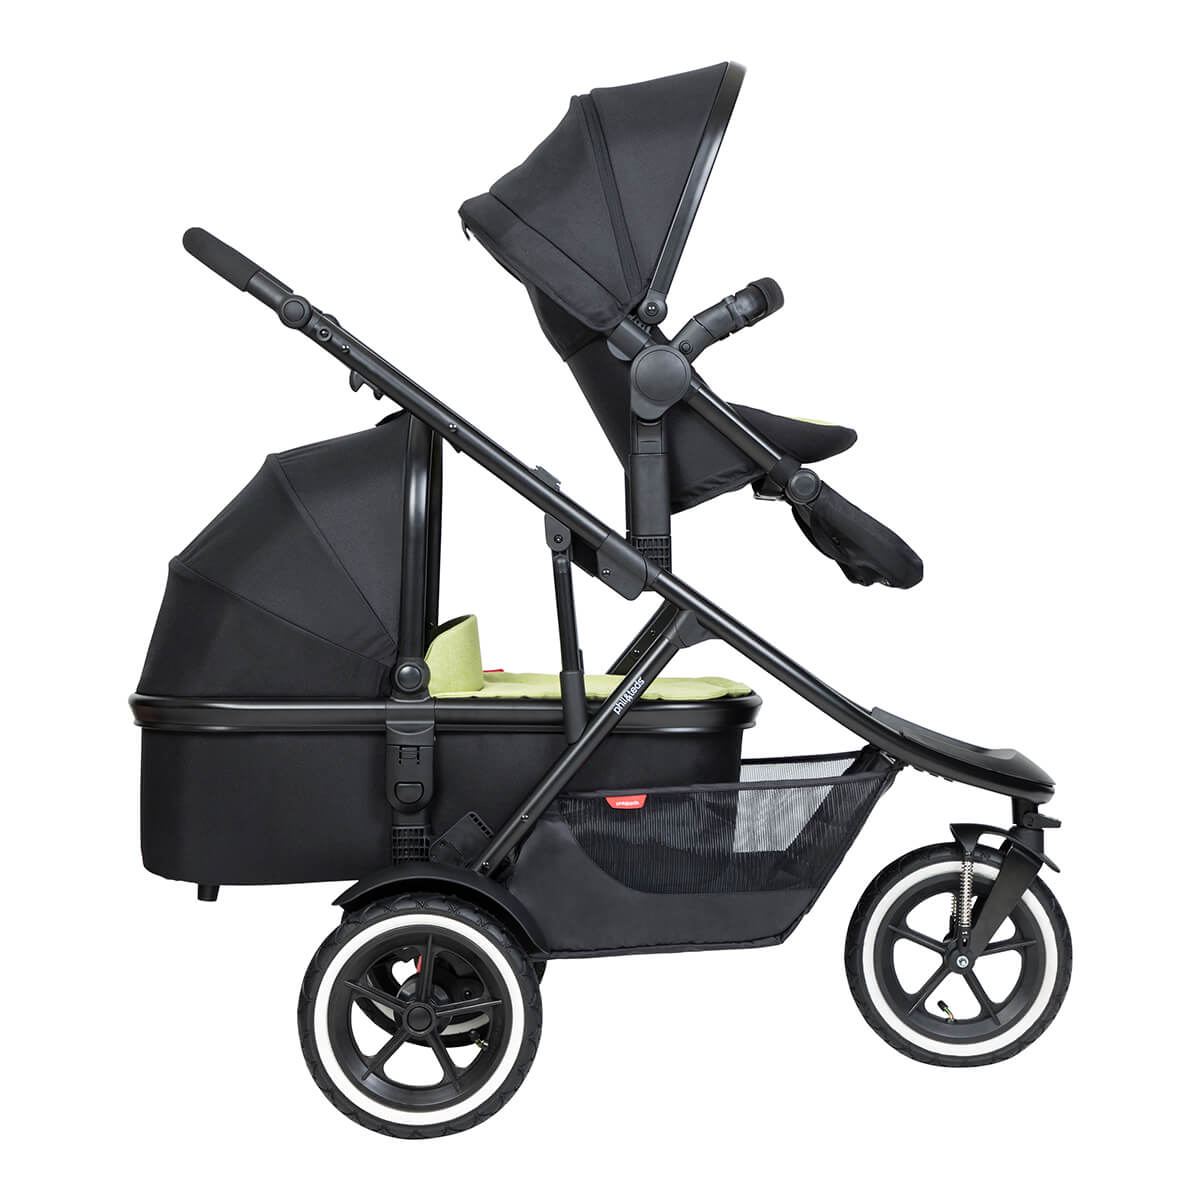 https://cdn.accentuate.io/4546157510761/19119322726505/philteds-sport-buggy-with-double-kit-extended-clip-and-snug-carrycot-side-view-v1625778226920.jpg?1200x1200